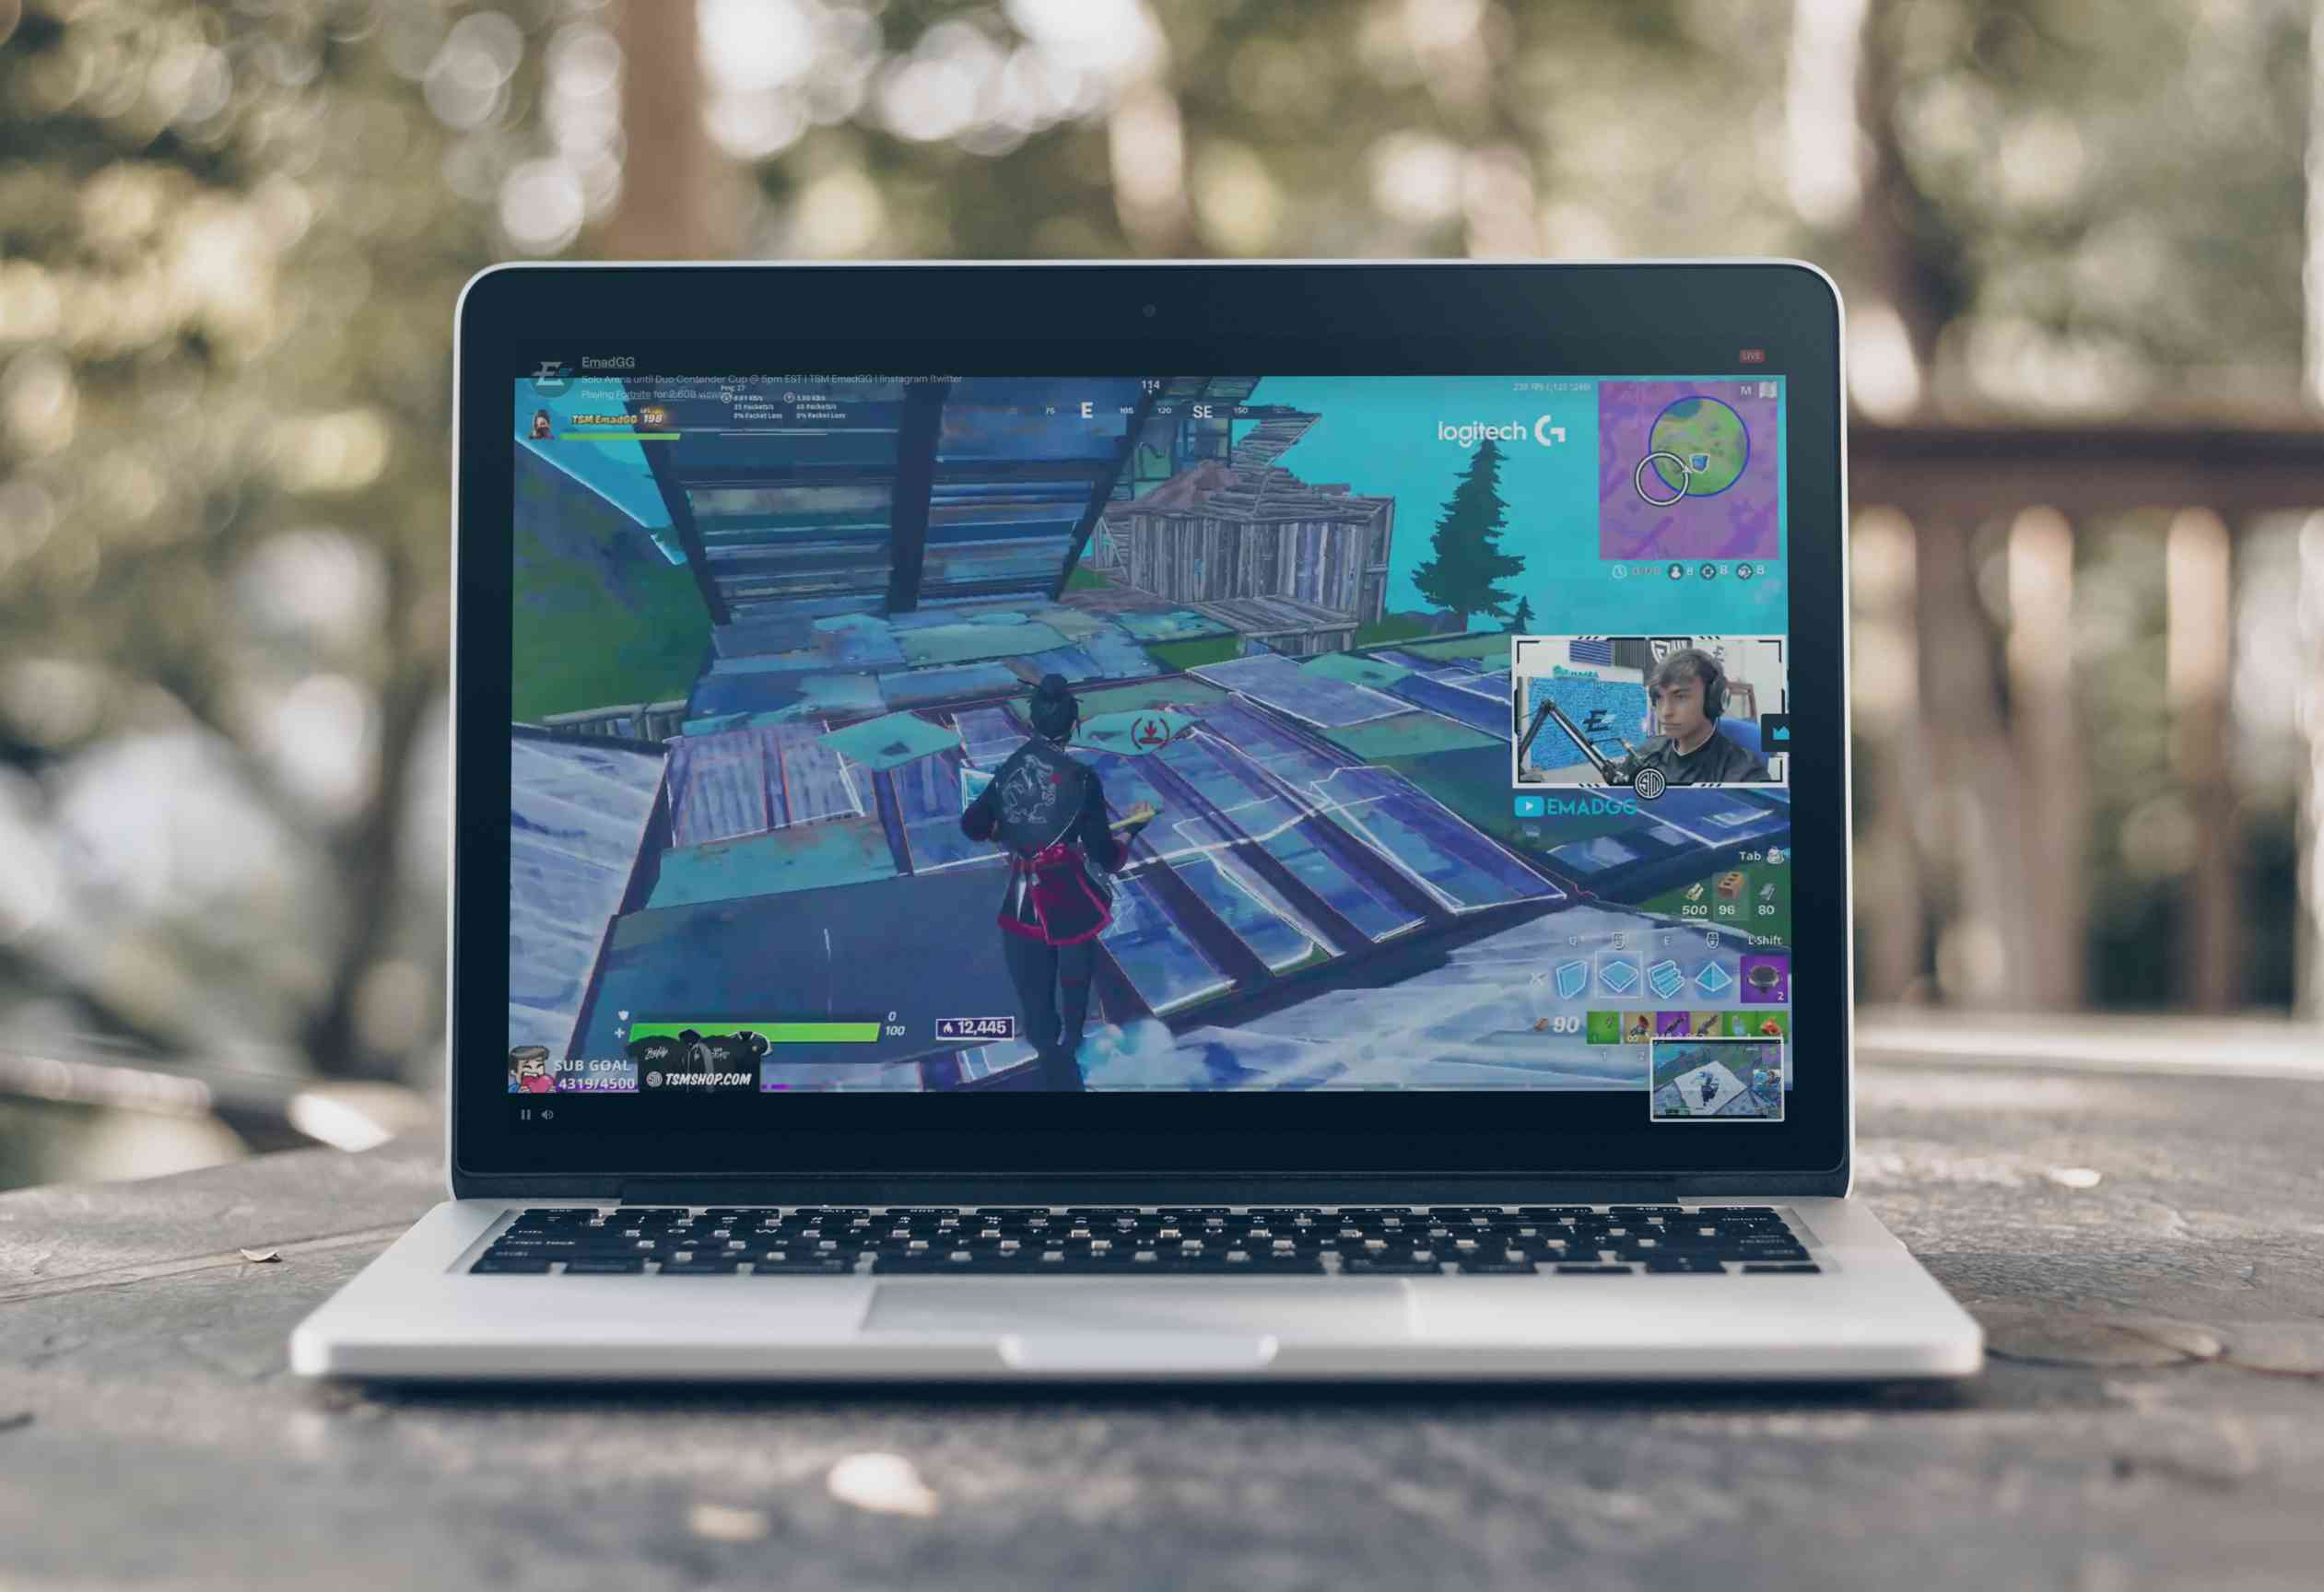 Laptop showing Fortnite streaming on Twitch